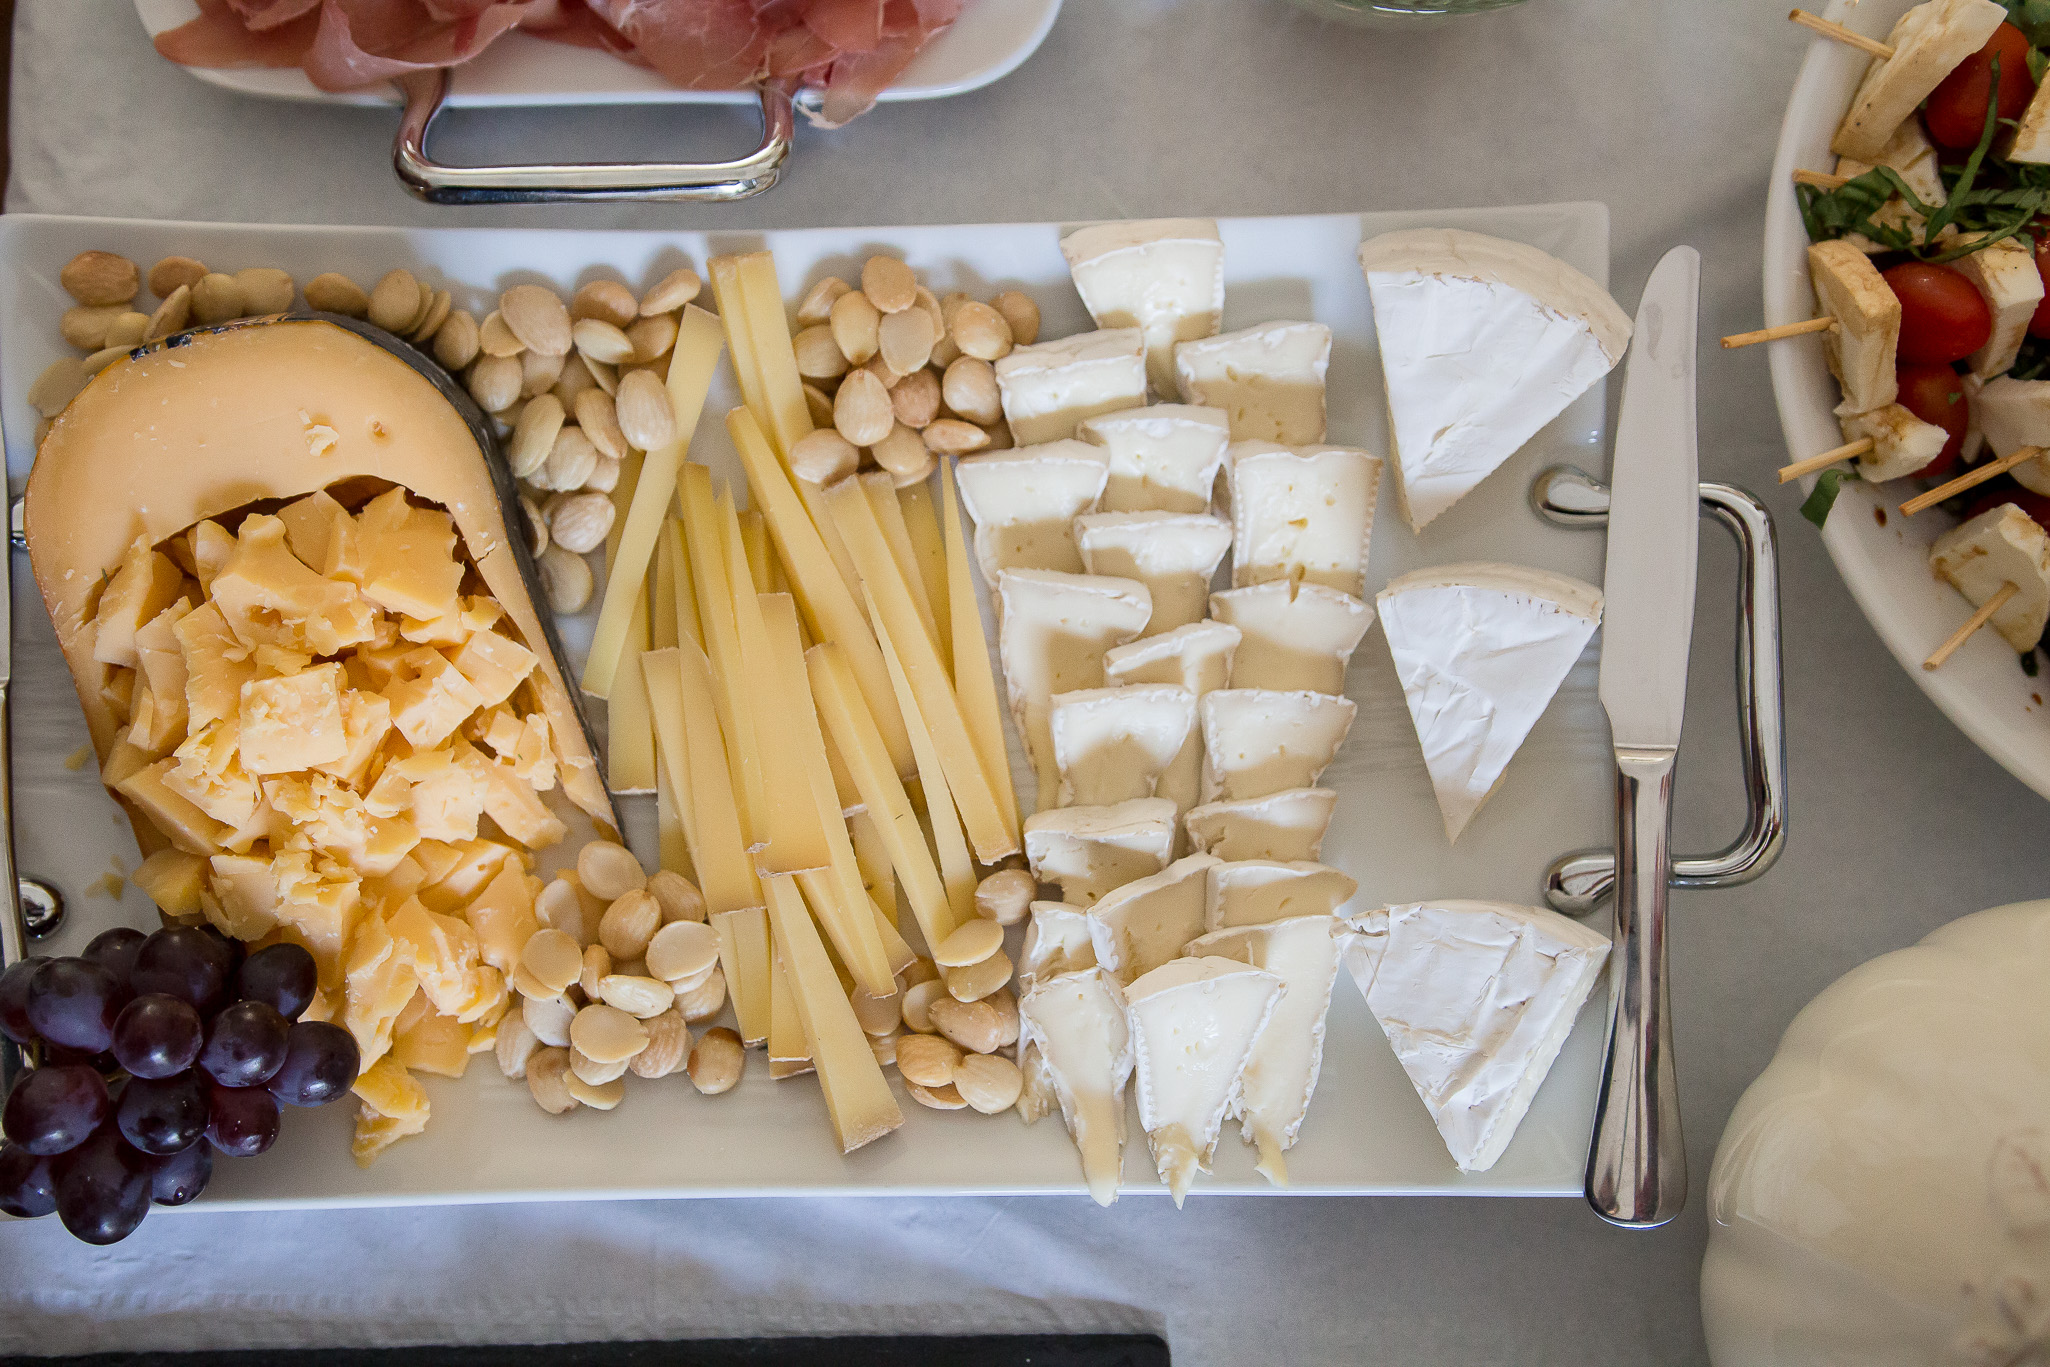 Some Marcona almonds and a bit of fruit can dress up a cheese plate in no time.